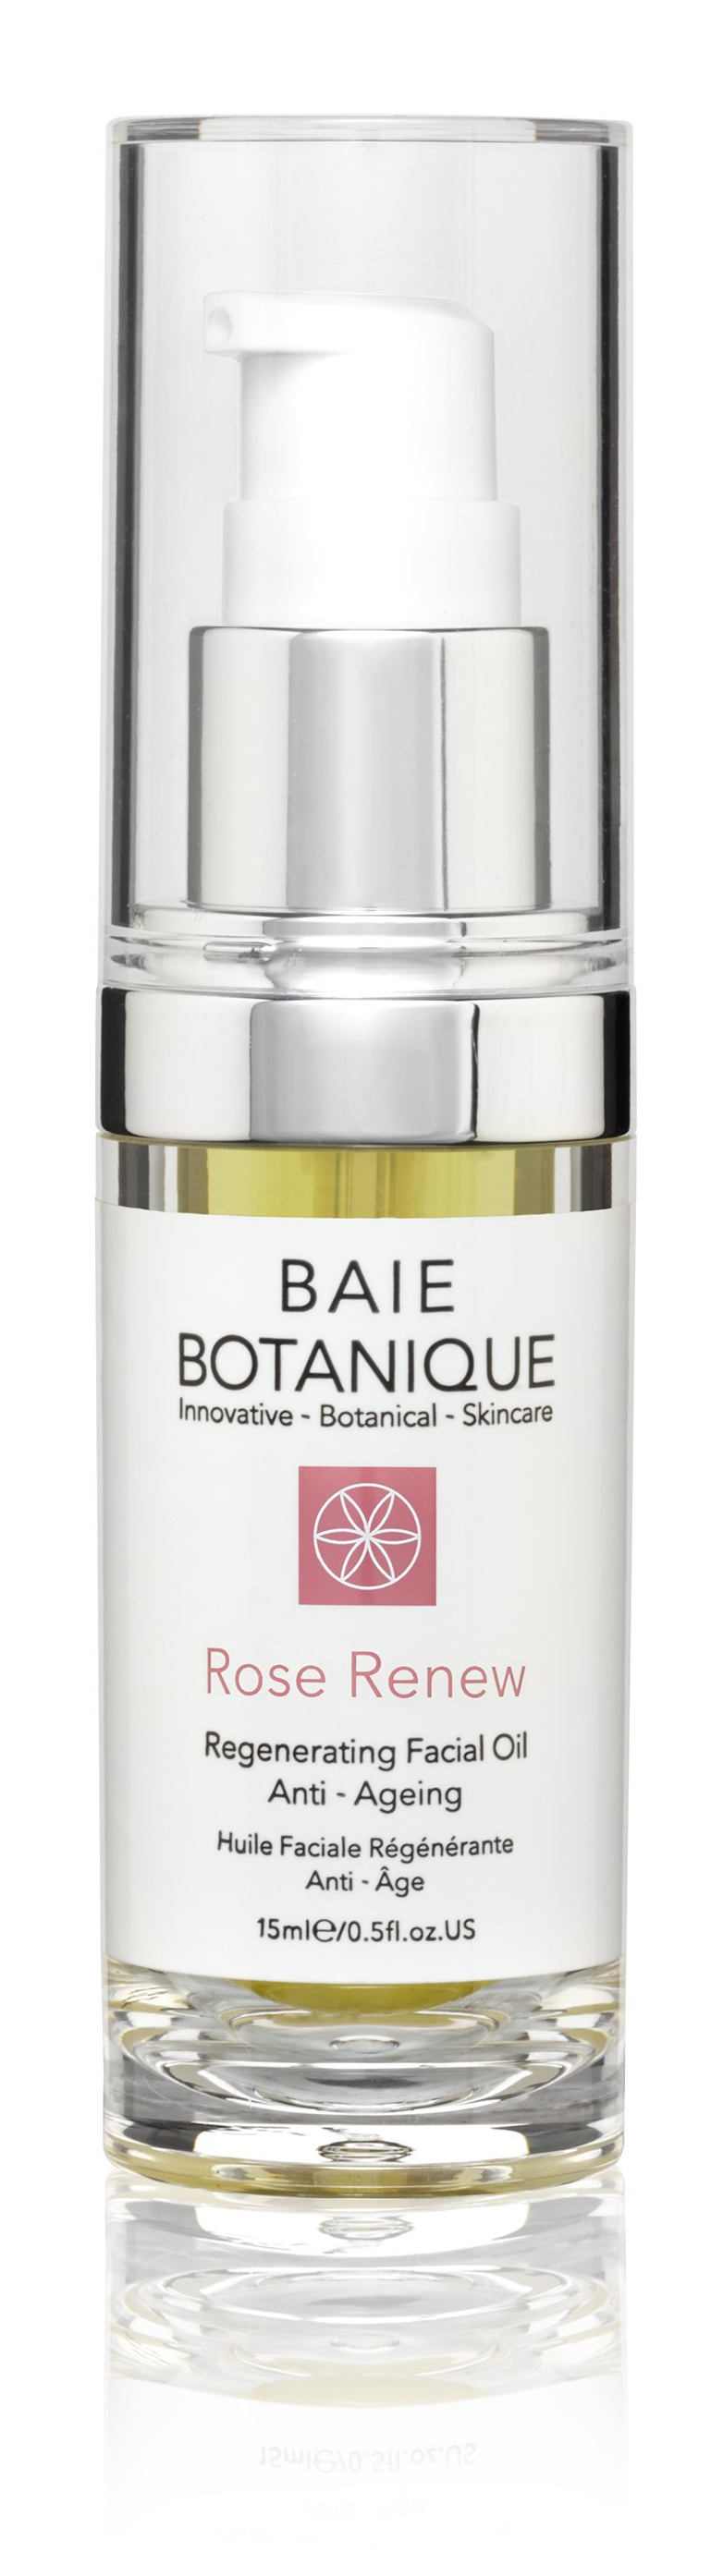 Baie Botanique Rose Renew Facial Oil